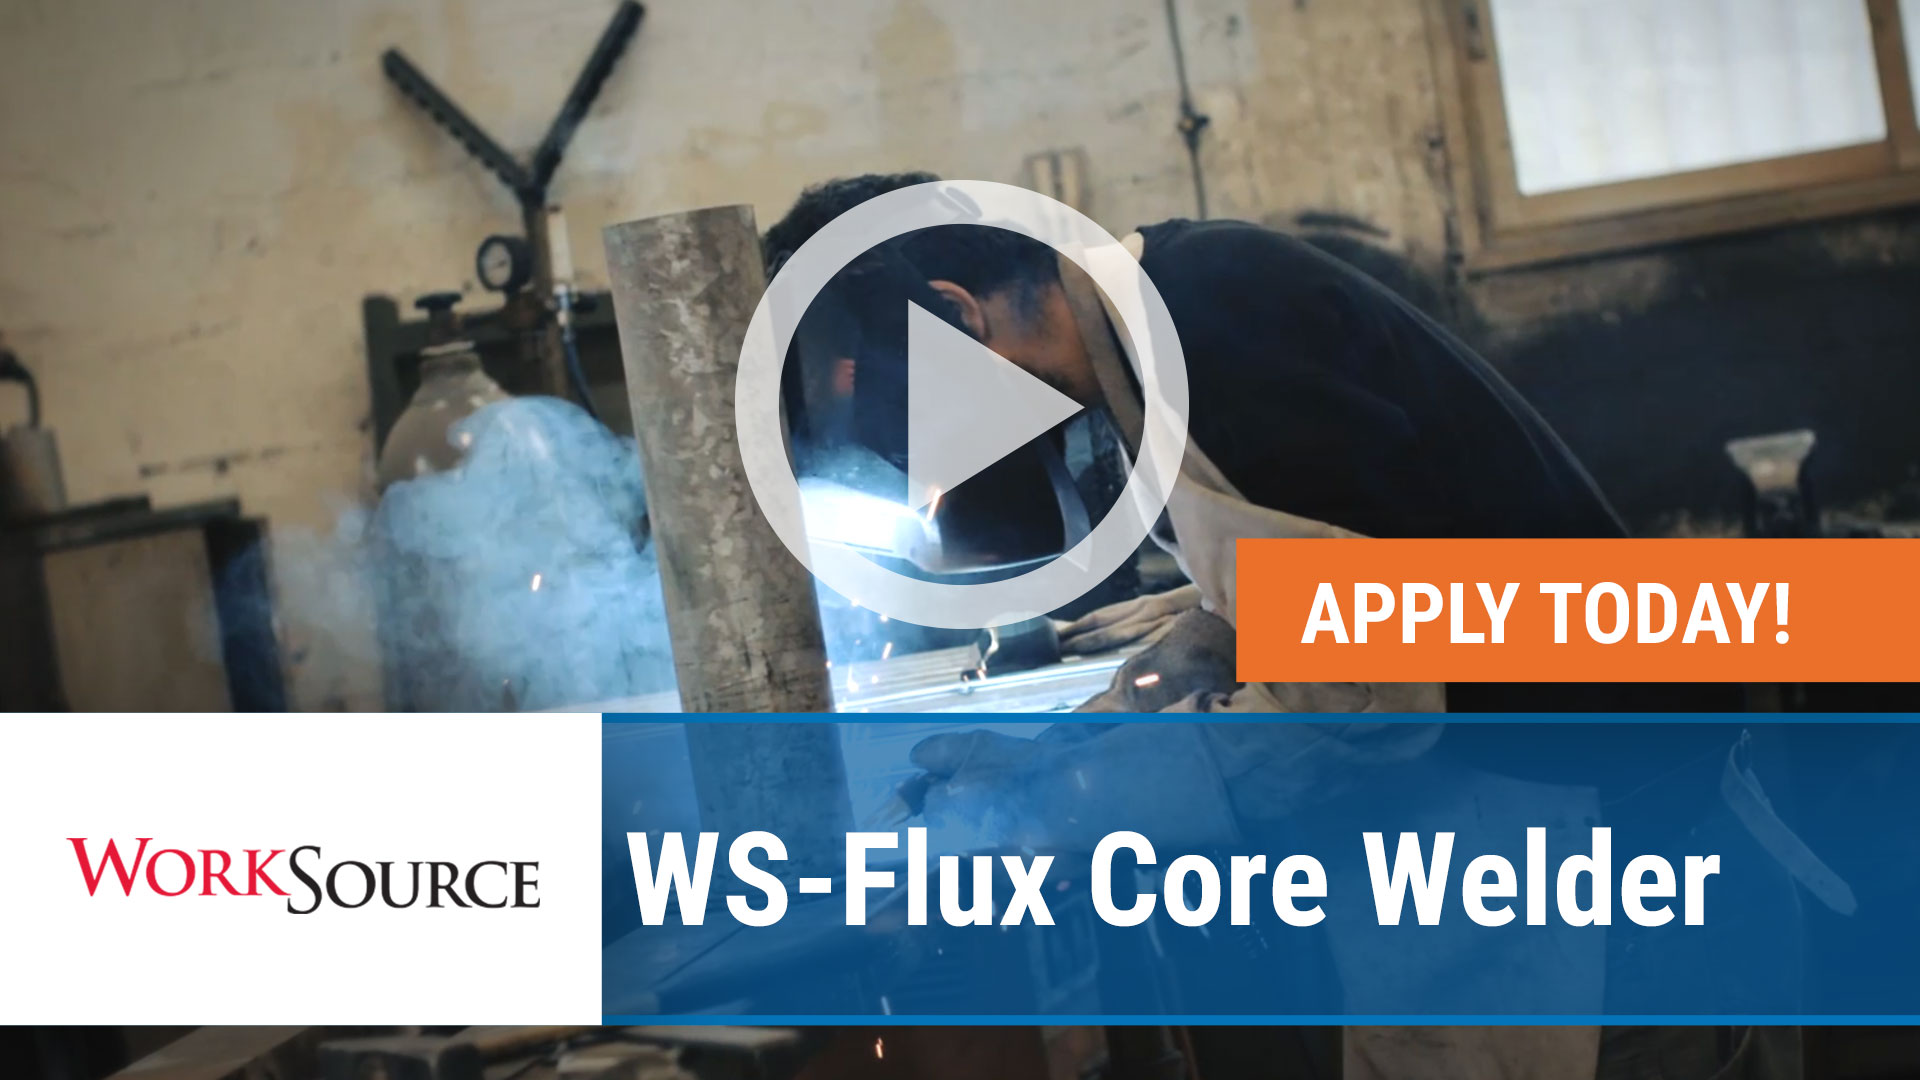 Watch our careers video for available job opening WS Flux Core Welder in Fort Smith, Arkansas